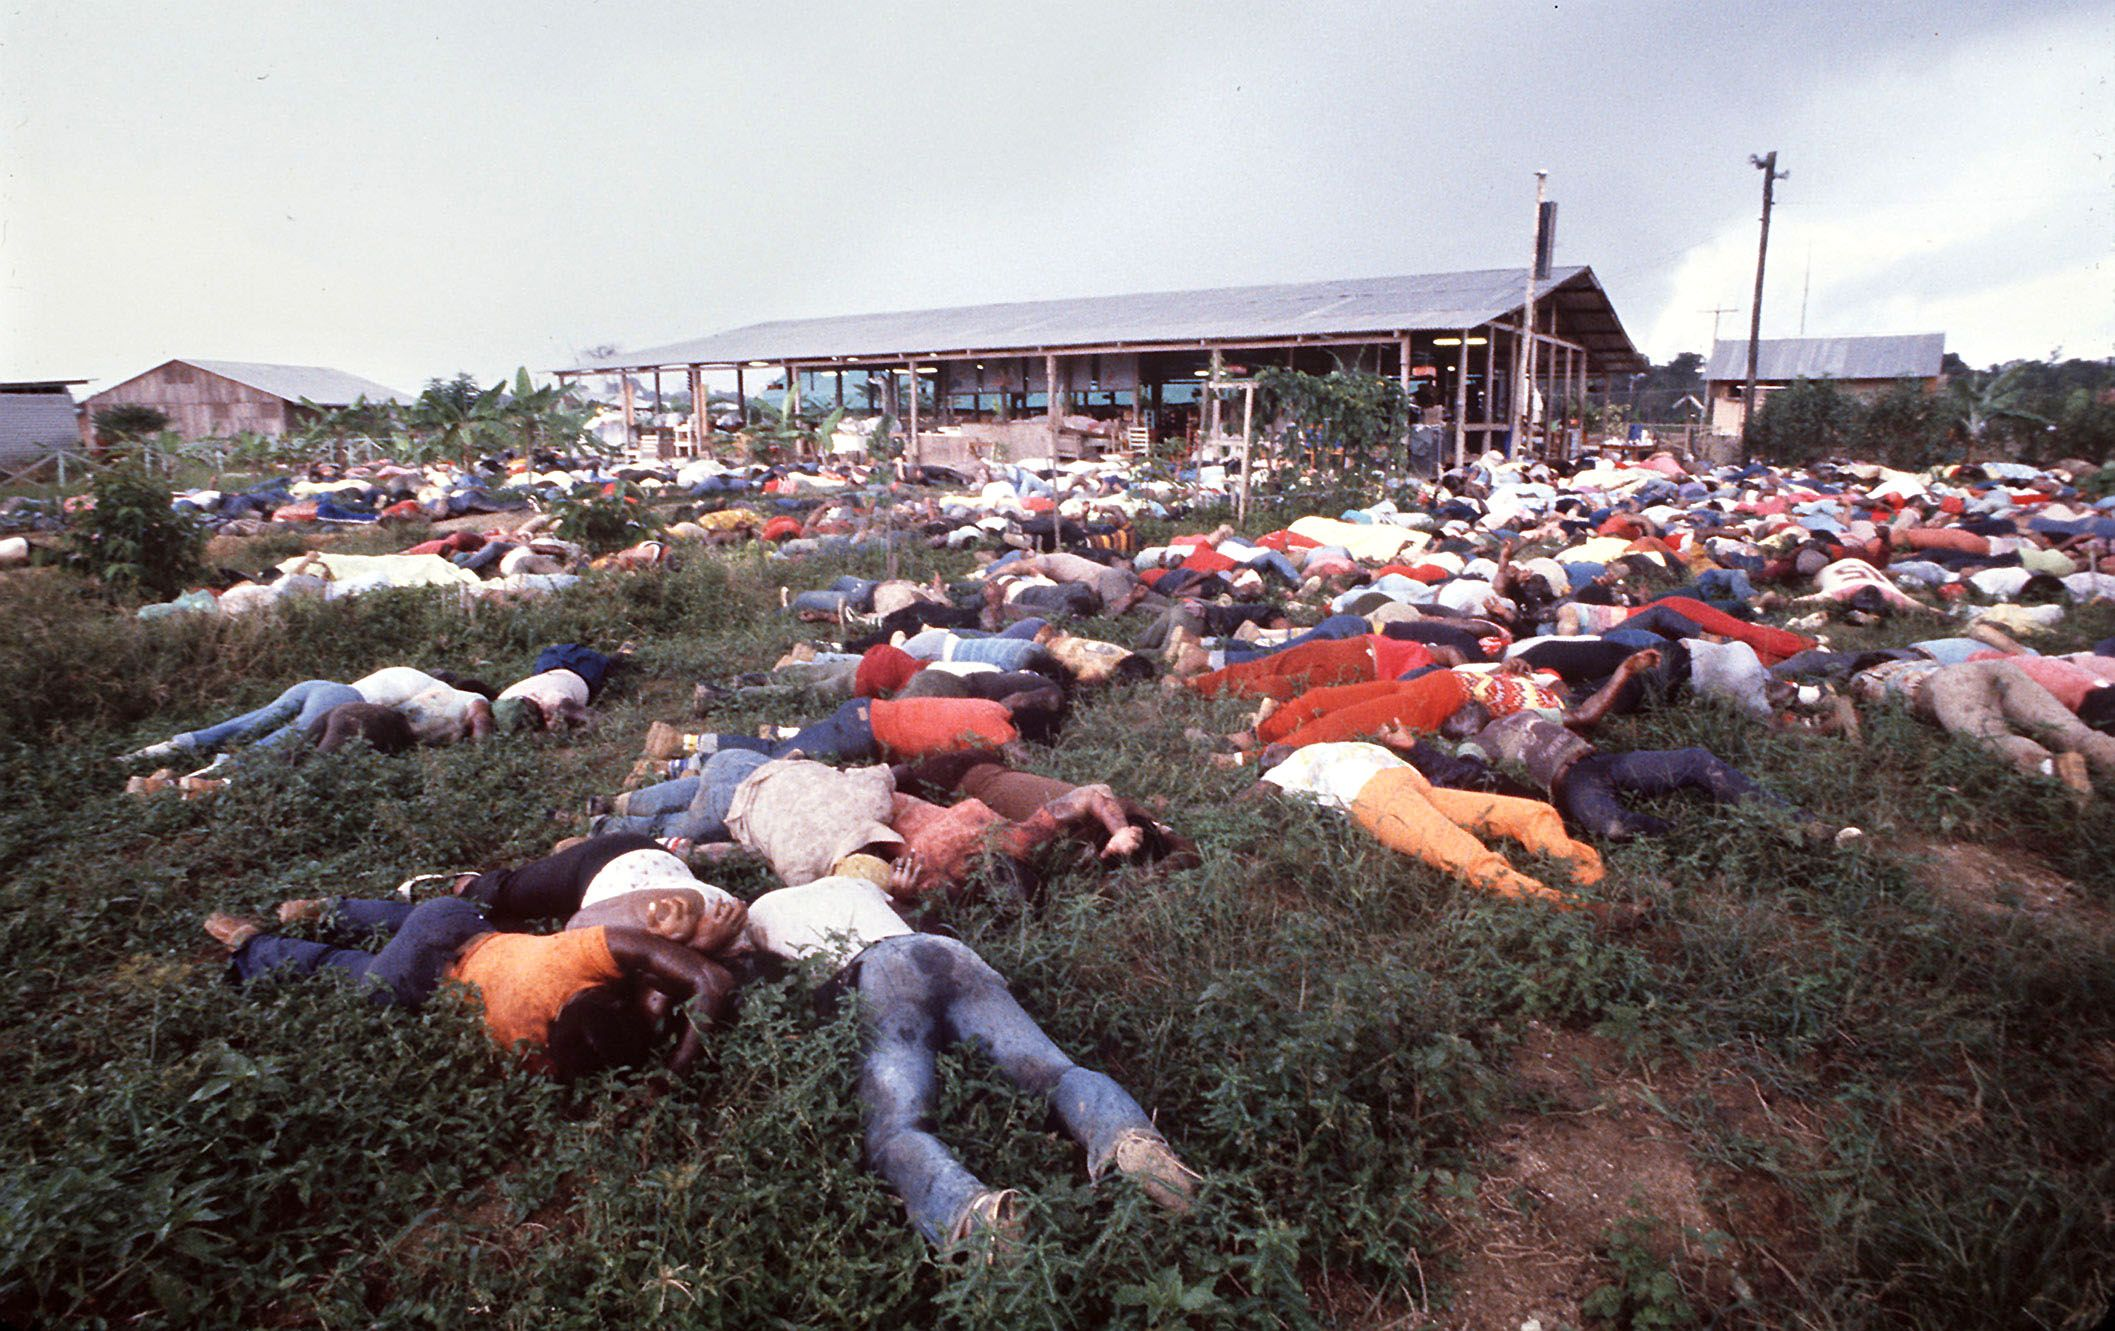 https://www.esquire.com/entertainment/a23301576/jim-jones-surviving-sons-abc-40th-anniversary-jonestown-documentary/